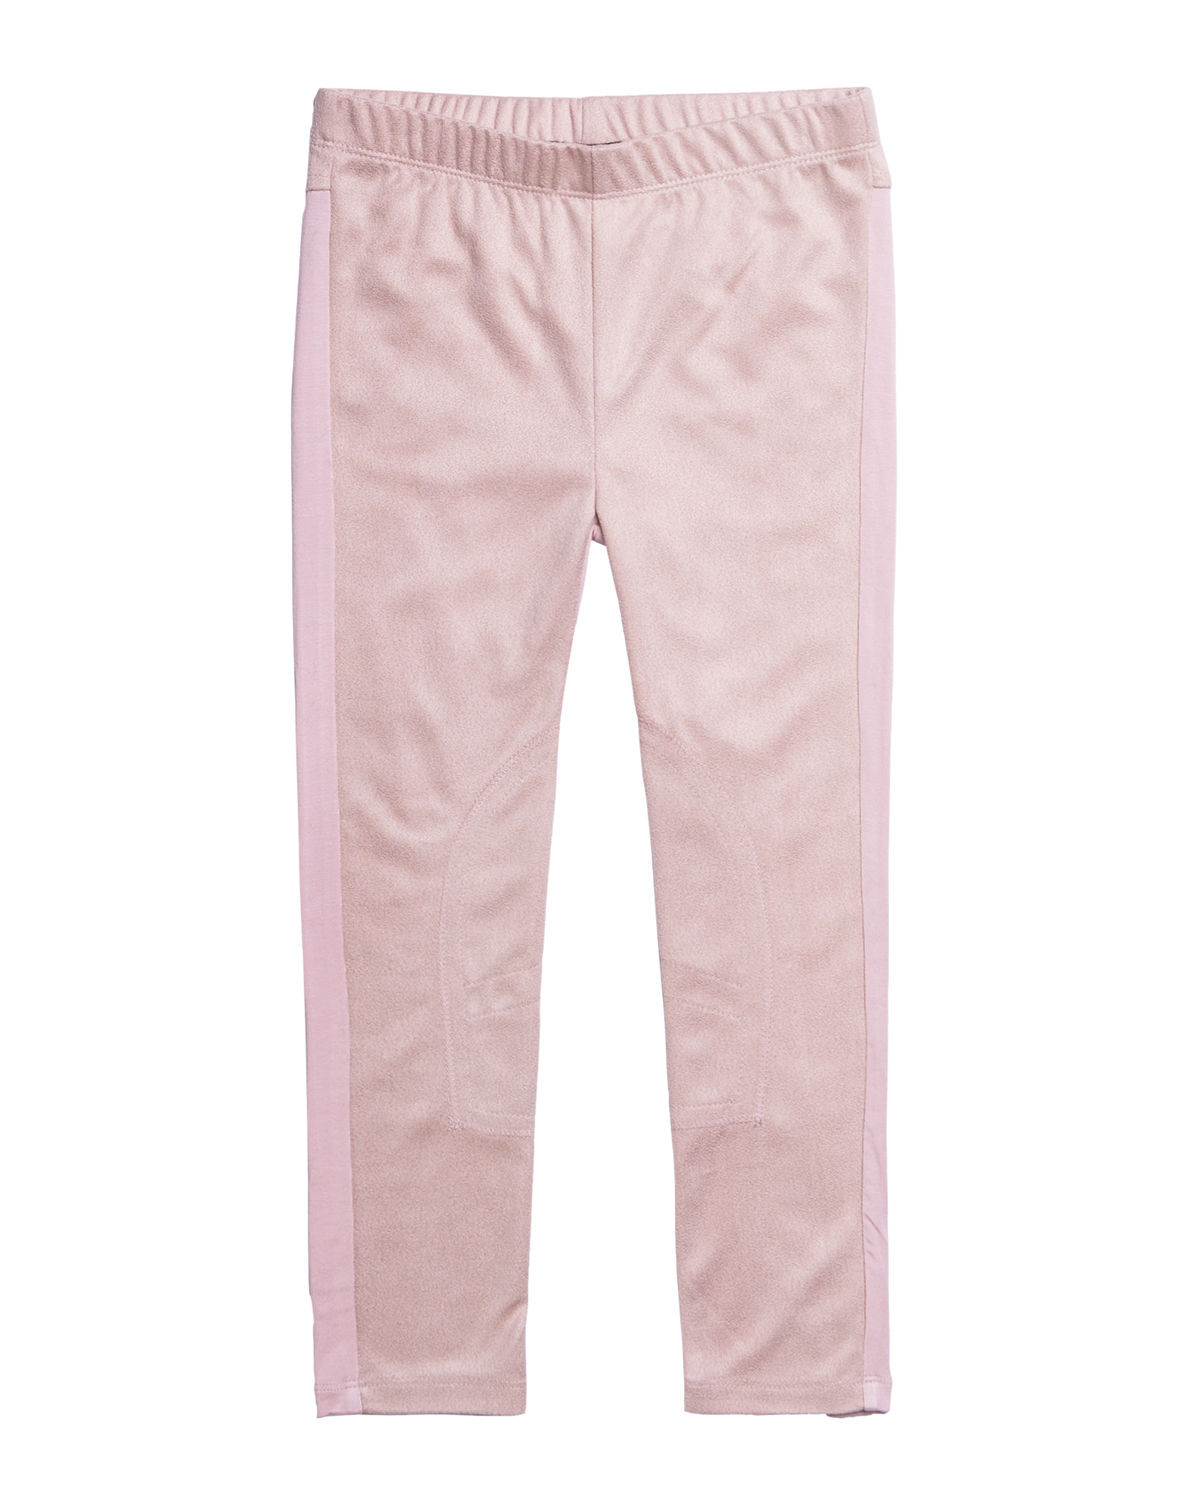 Imoga GIRL'S TWO-TONE STRETCHY FAUX SUEDE PANTS